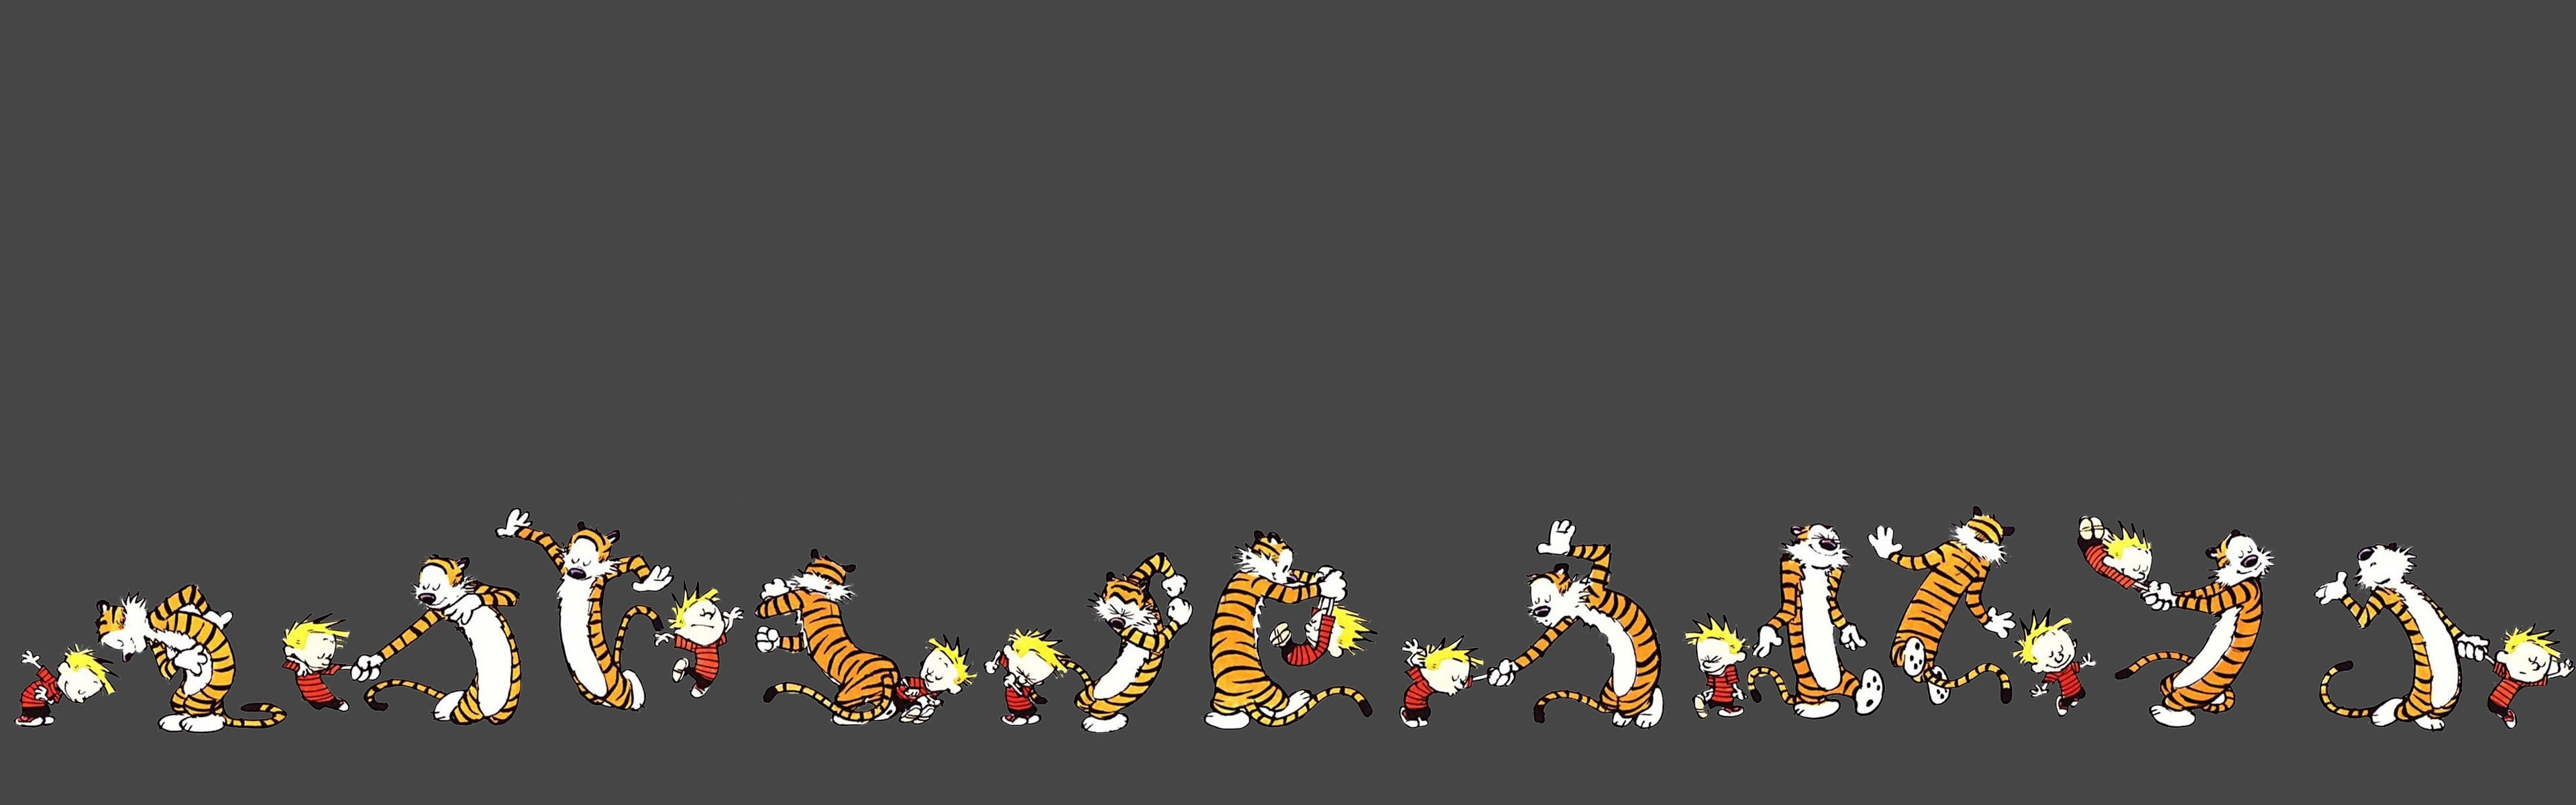 Popular Wallpaper Mac Calvin And Hobbes - 1001158-calvin-and-hobbes-wallpapers-3840x1200-hd-for-mobile  You Should Have_846048.jpg